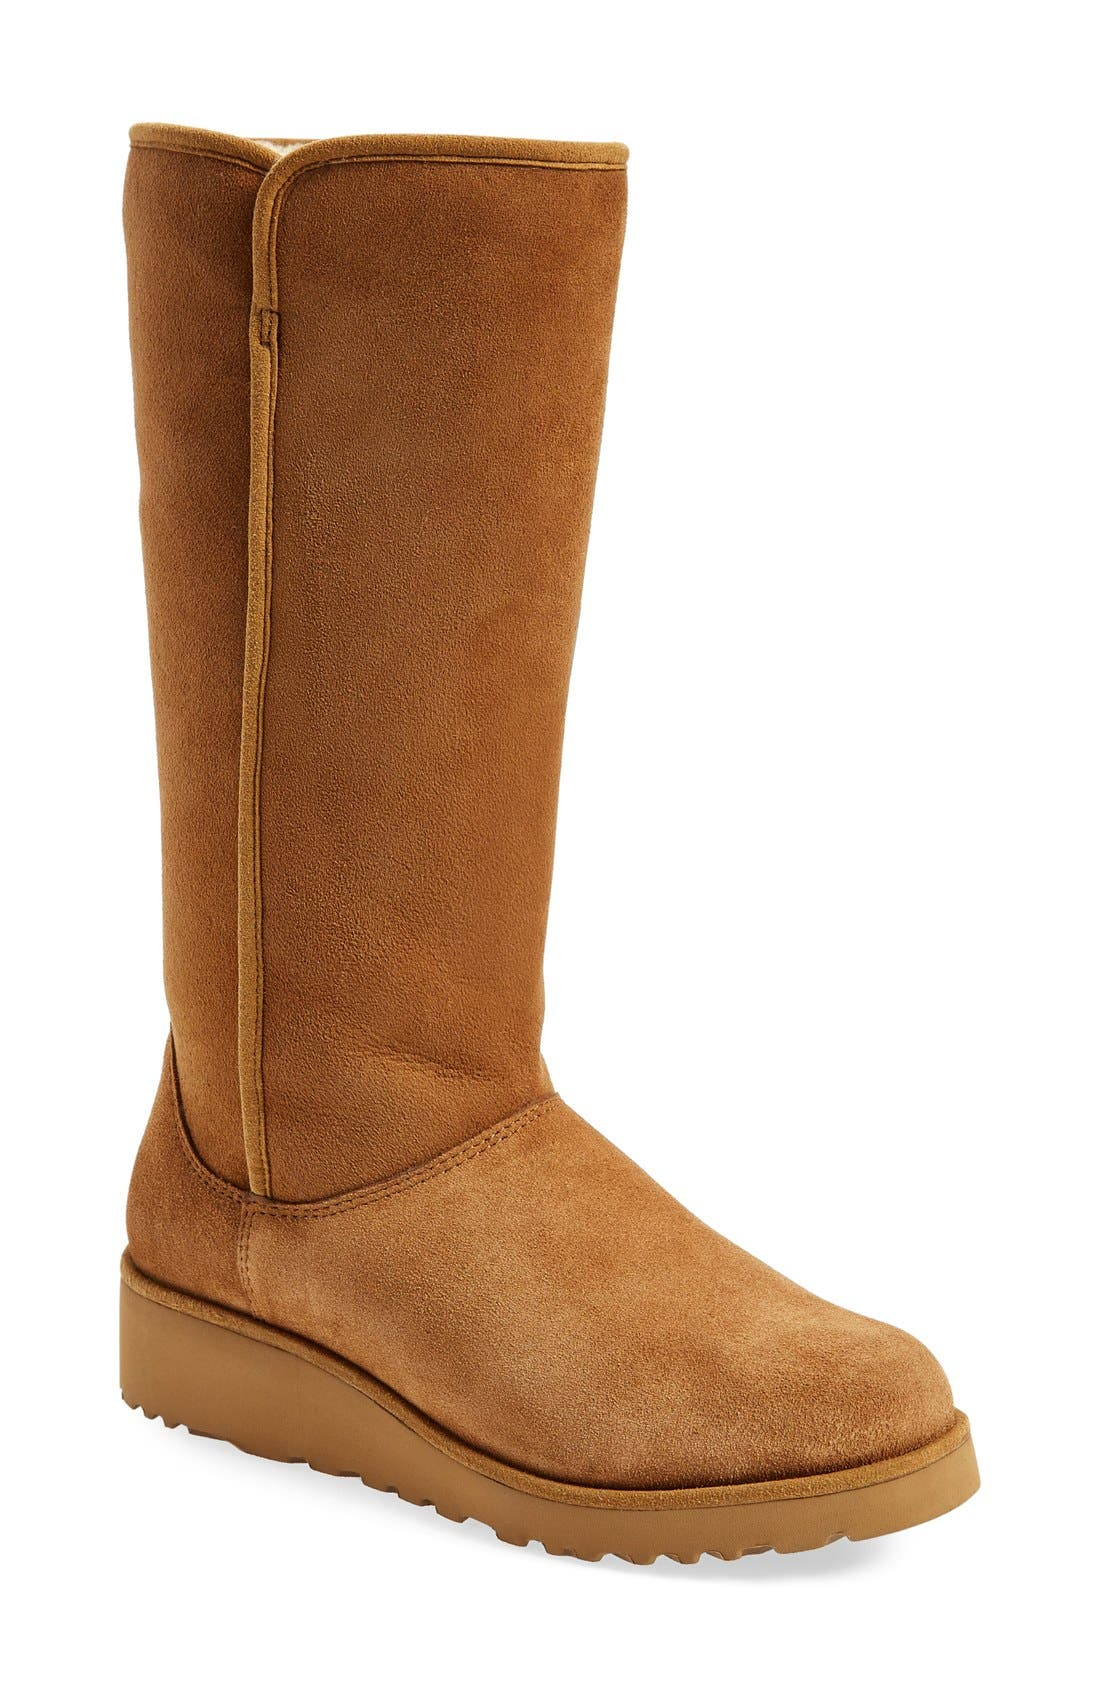 Kara - Classic Slim<sup>™</sup> Water Resistant Tall Boot,                             Main thumbnail 1, color,                             219